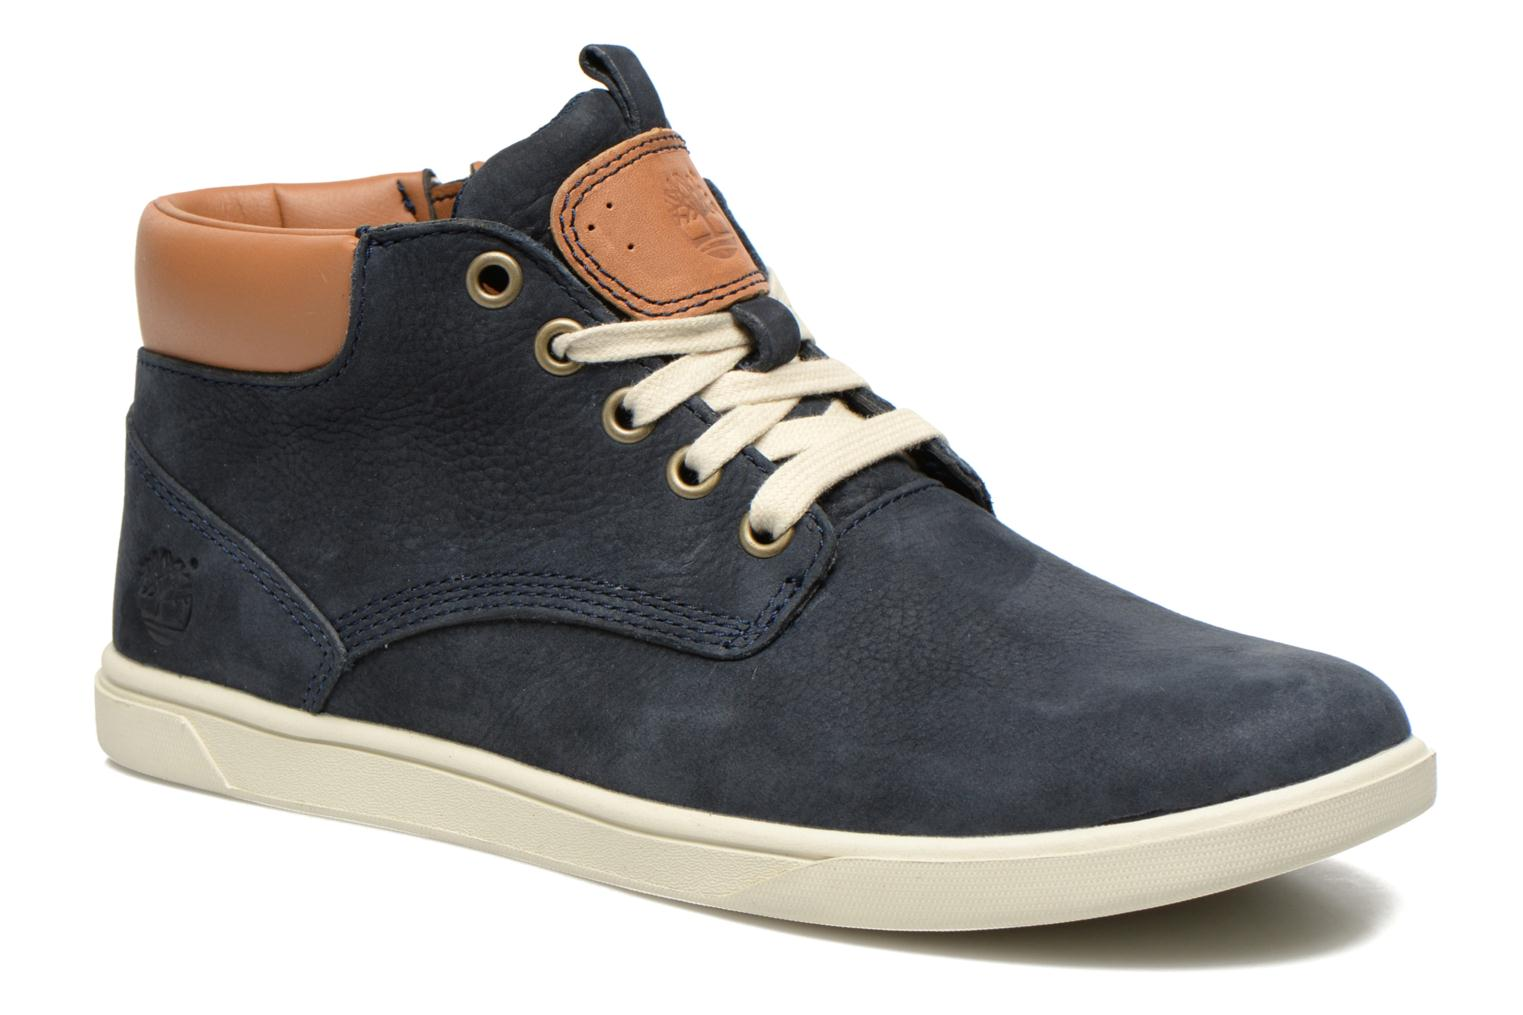 Sneakers Groveton Leather Chukka by Timberland